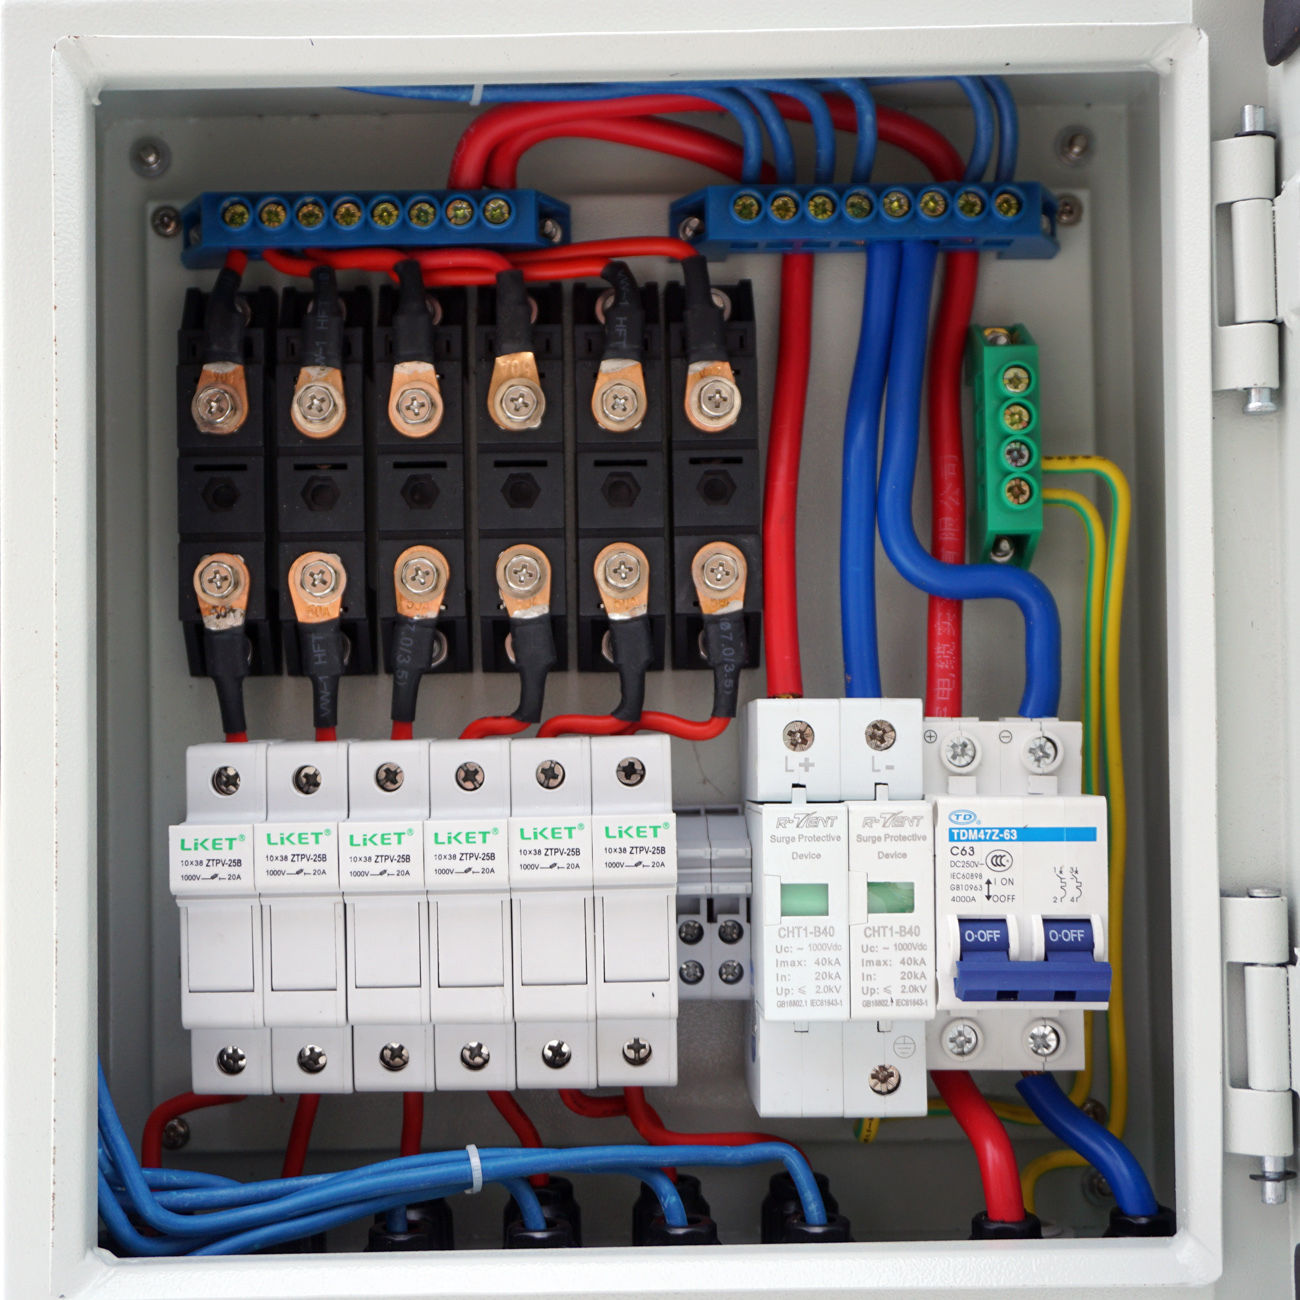 6 String Solar PV Combiner Box W Circuit Breakers Surge Lightning  Protection-in Connectors from Lights & Lighting on Aliexpress.com | Alibaba  Group